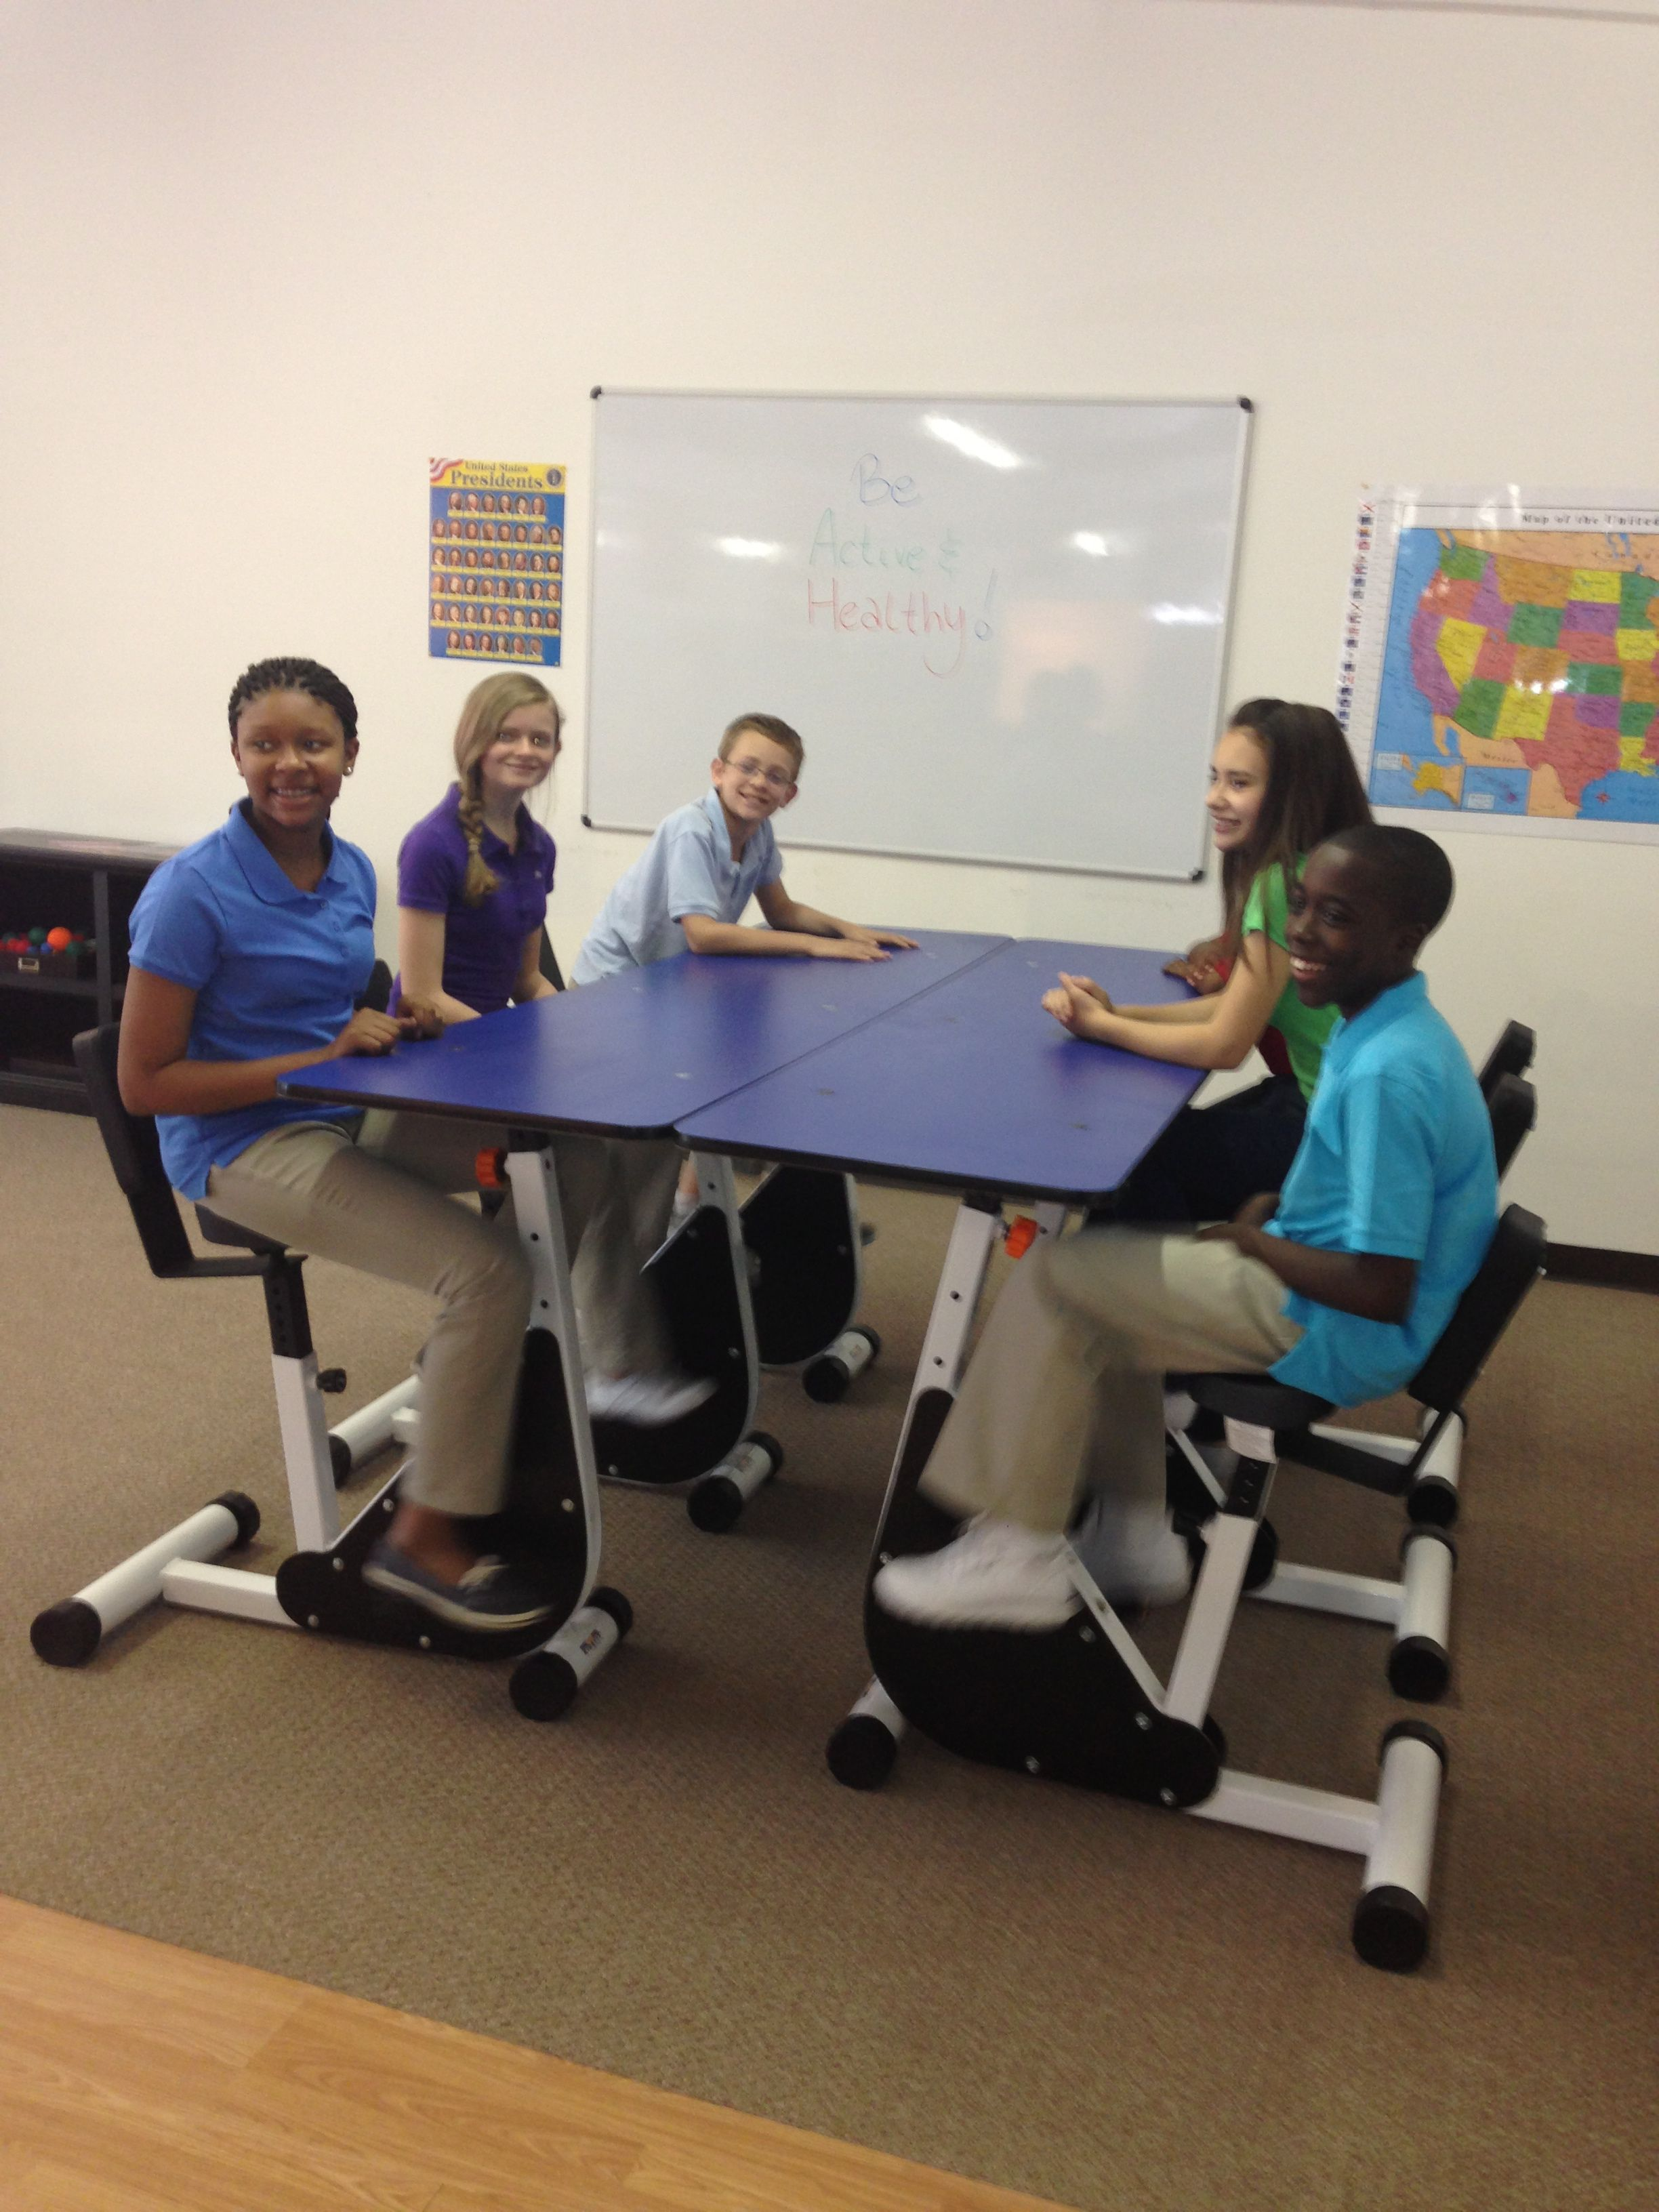 The 6 Person Pedal Desk By Kidsfit Great For Students Who Require Continual Motion As The Ped Modern Classroom Lower Body Muscles Flexible Seating Classroom